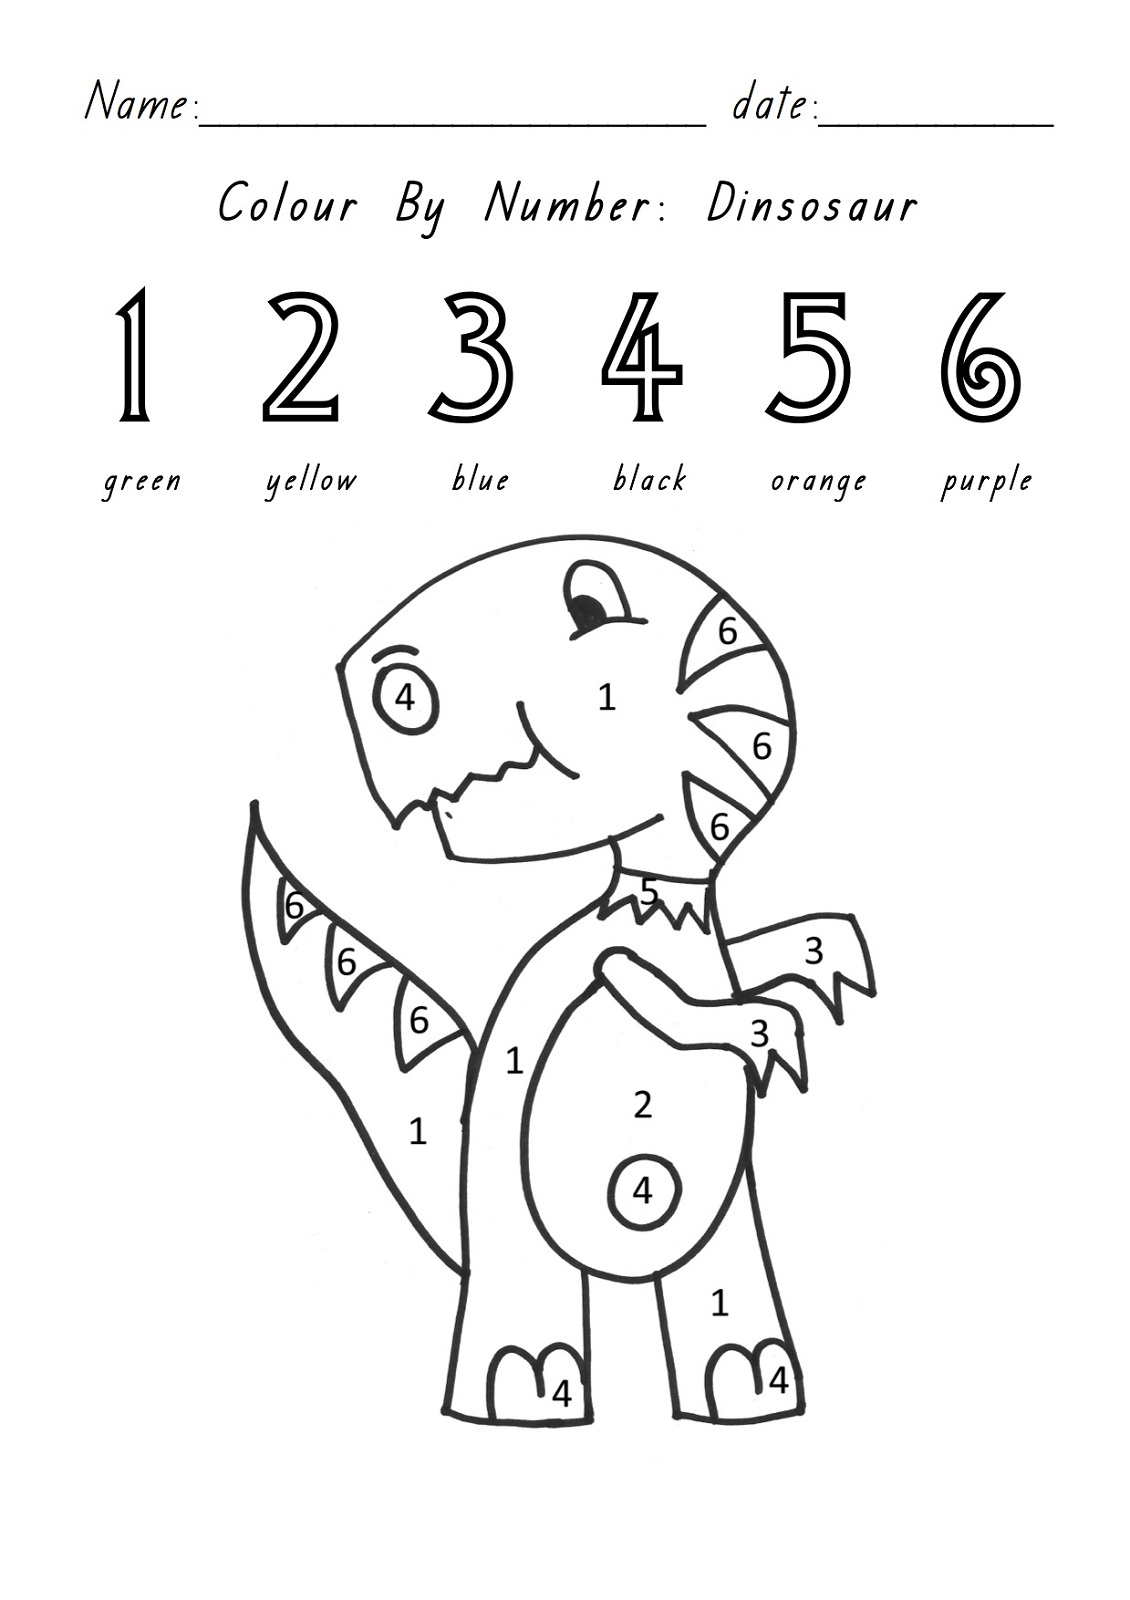 number matching coloring pages candy corn number matching coloring page cursive number pages matching coloring